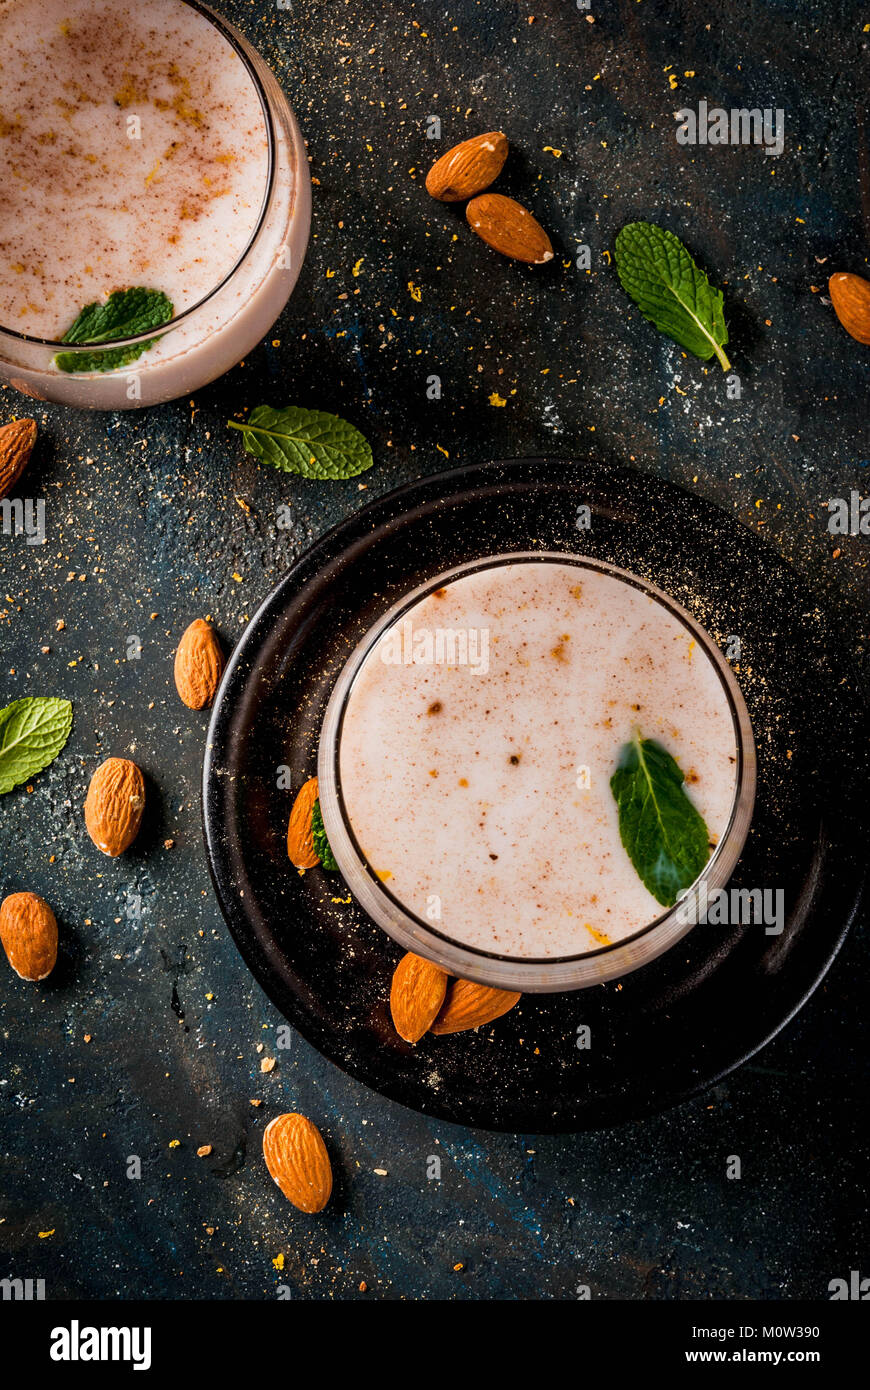 Traditional Indian beverage, Holi festival food, Thandai Sardai milk drink with nuts, spices, mint. Dark blue background, - Stock Image